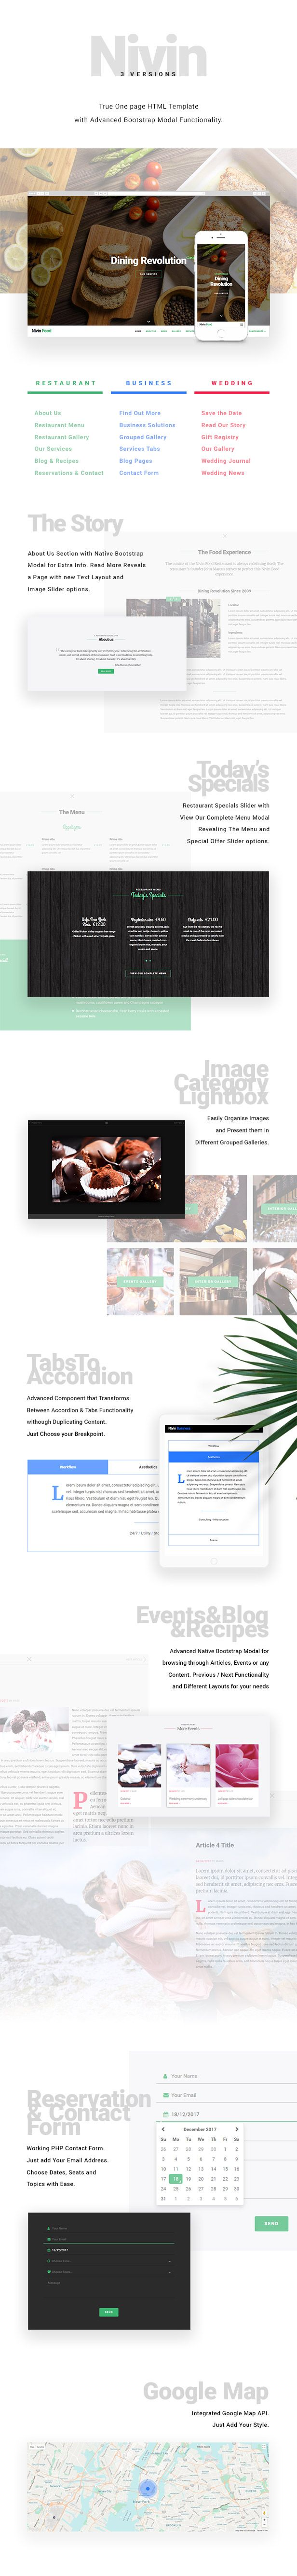 Nivin - Restaurant Website Template  Suited for Restaurants, Foods, Caffe and Bar needs. Restaurant Template is equipped with Today's Specials Slider, Food Menu Modal with Drinks and Food Menu. Working Contact form with date, time and seats selection. It comes in light and dark versions. Page is divided in Sections: About Us / Restaurant / Menu / Restaurant Gallery / Our Services / Blog & Recipes / Reservations&Contact